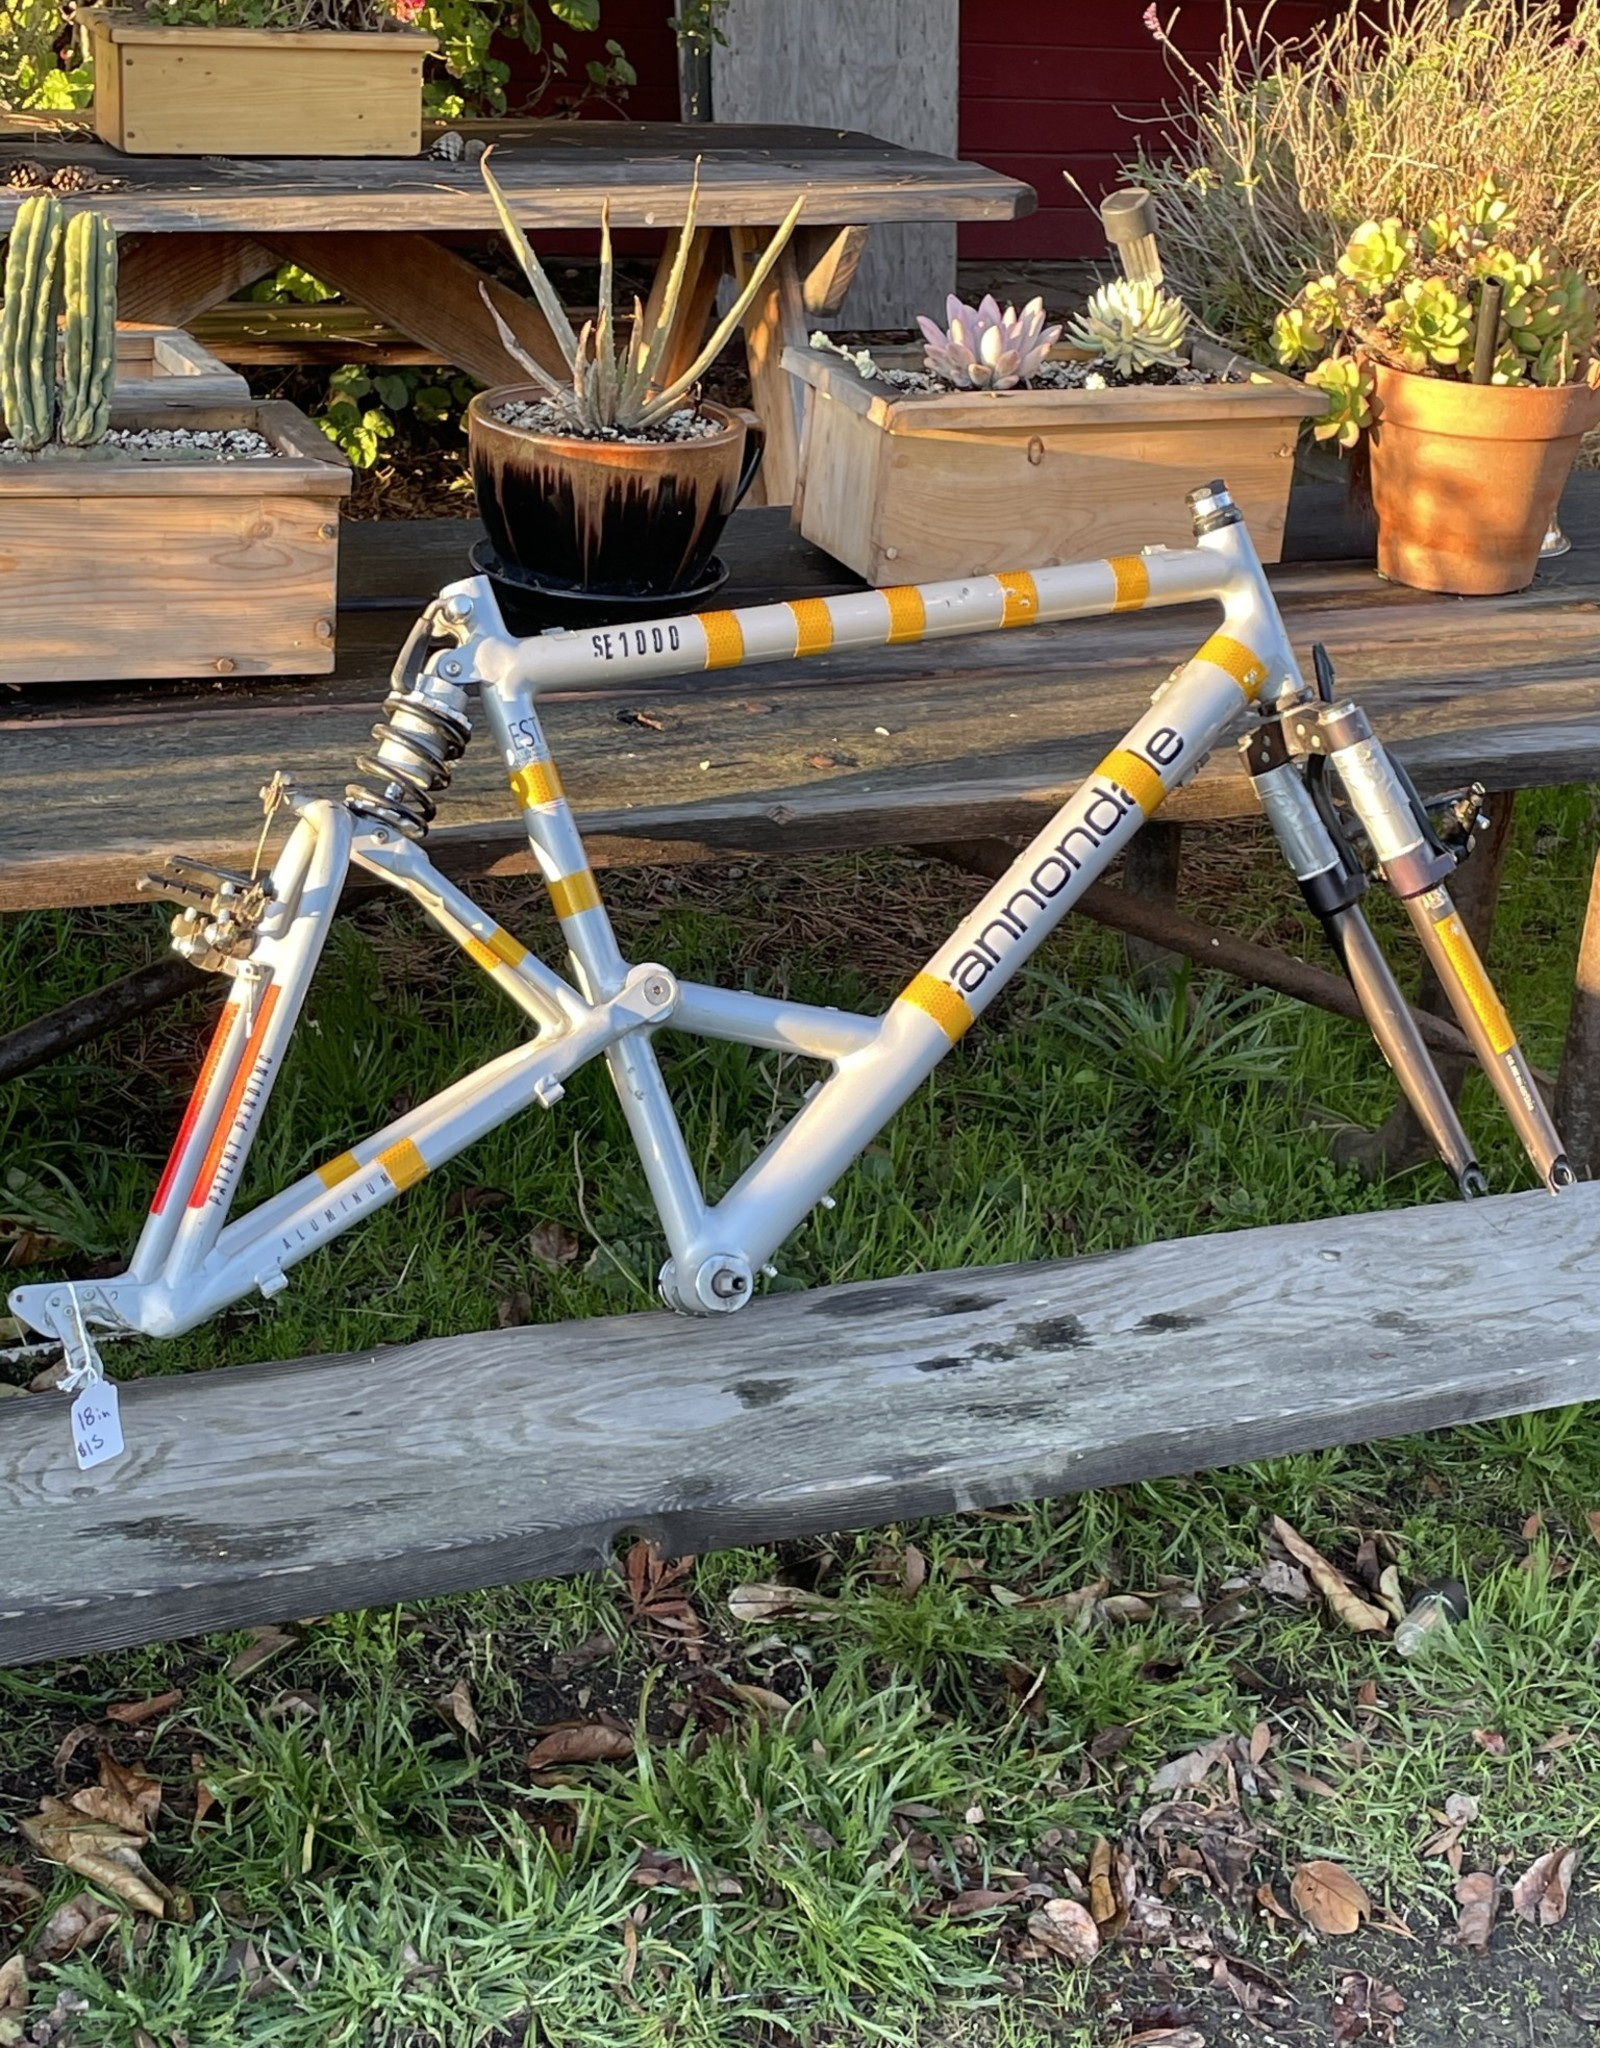 Cannondale SE1000 Mountain Frame - 18in